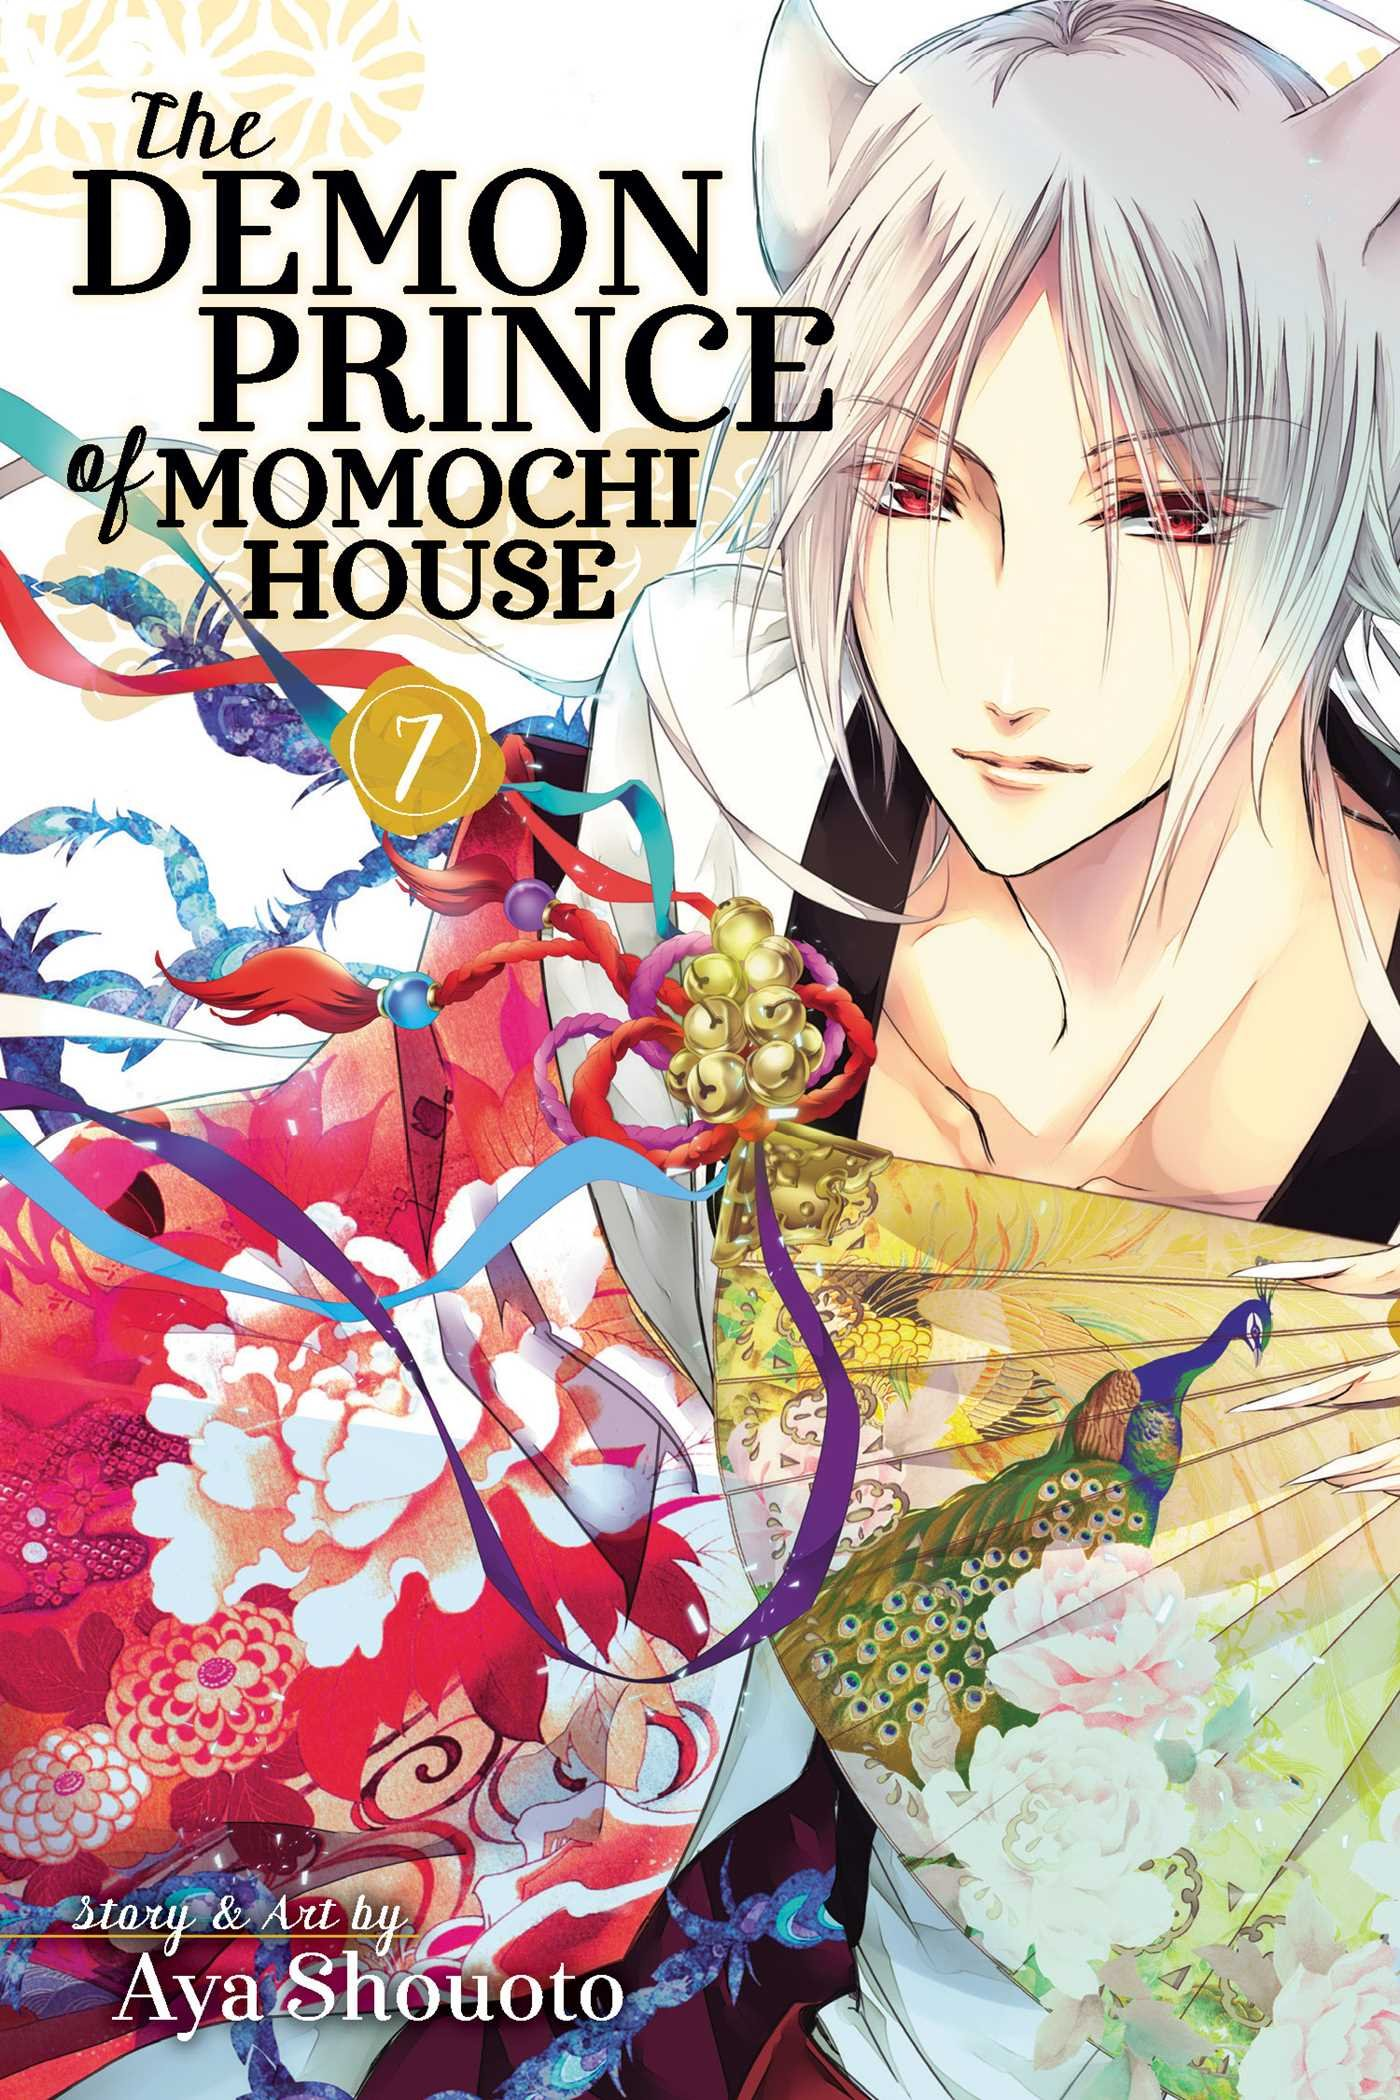 The Demon Prince of Momochi House, Vol  7: Aya Shouoto